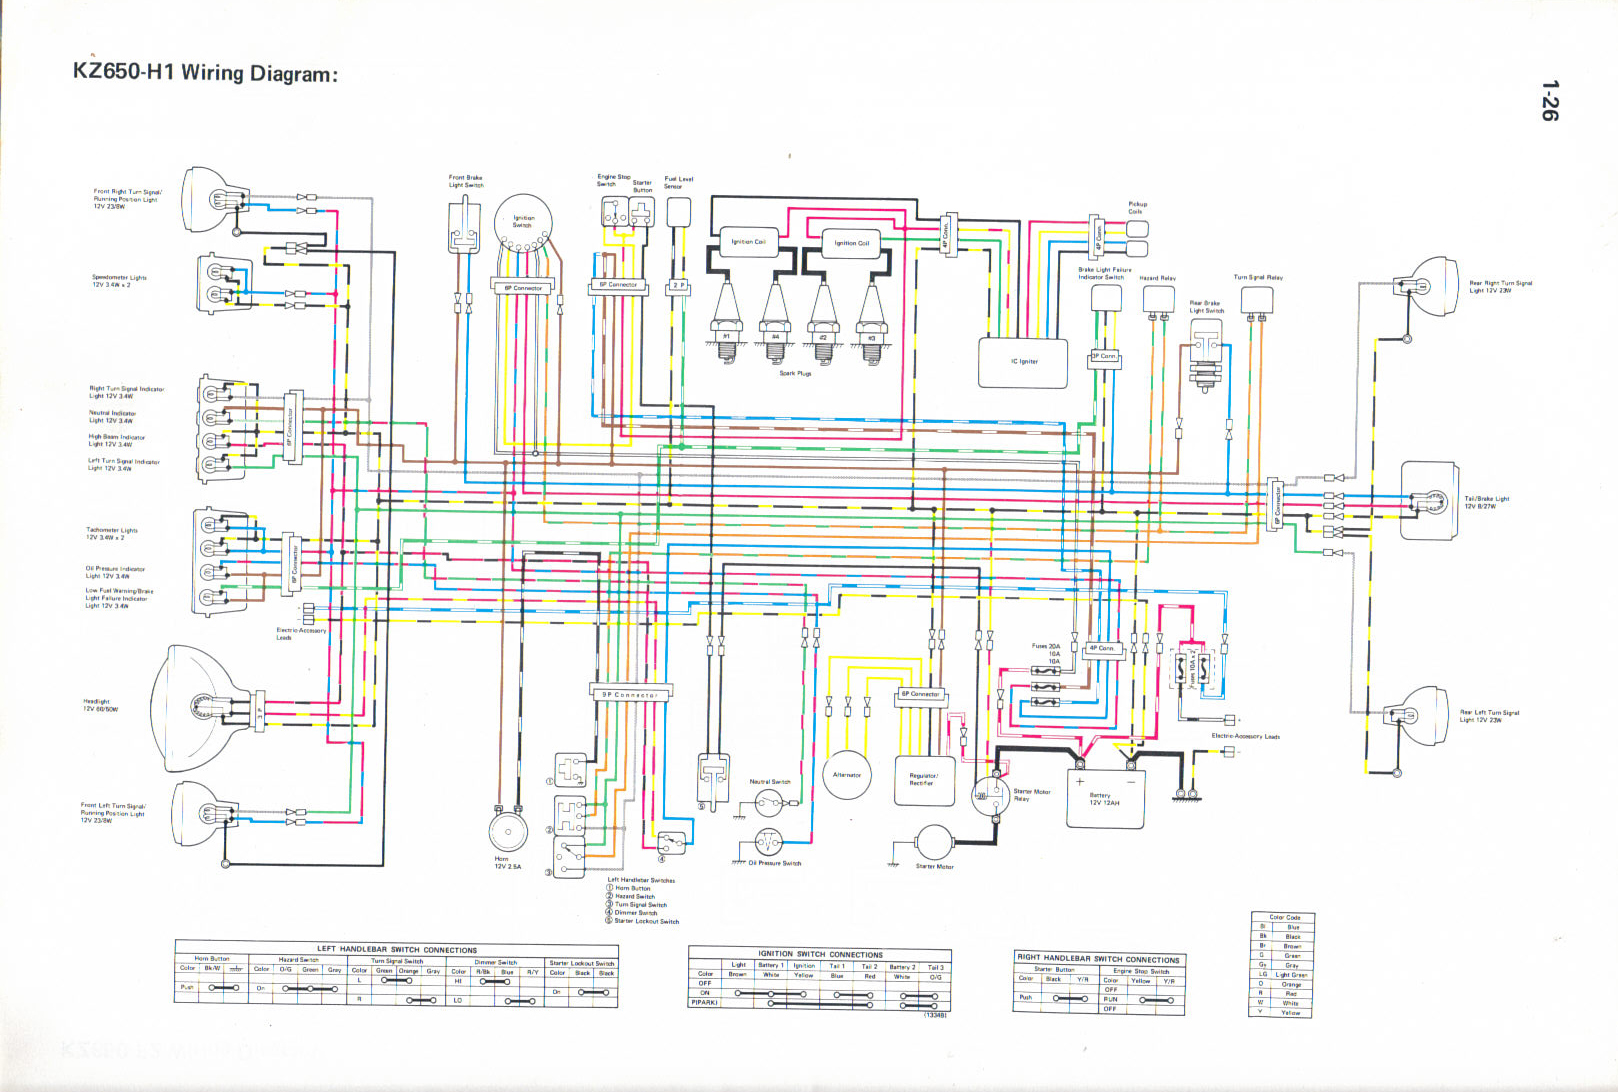 H1 wiring diagram wiring diagrams schematics h1 wiring diagram asfbconference2016 Image collections